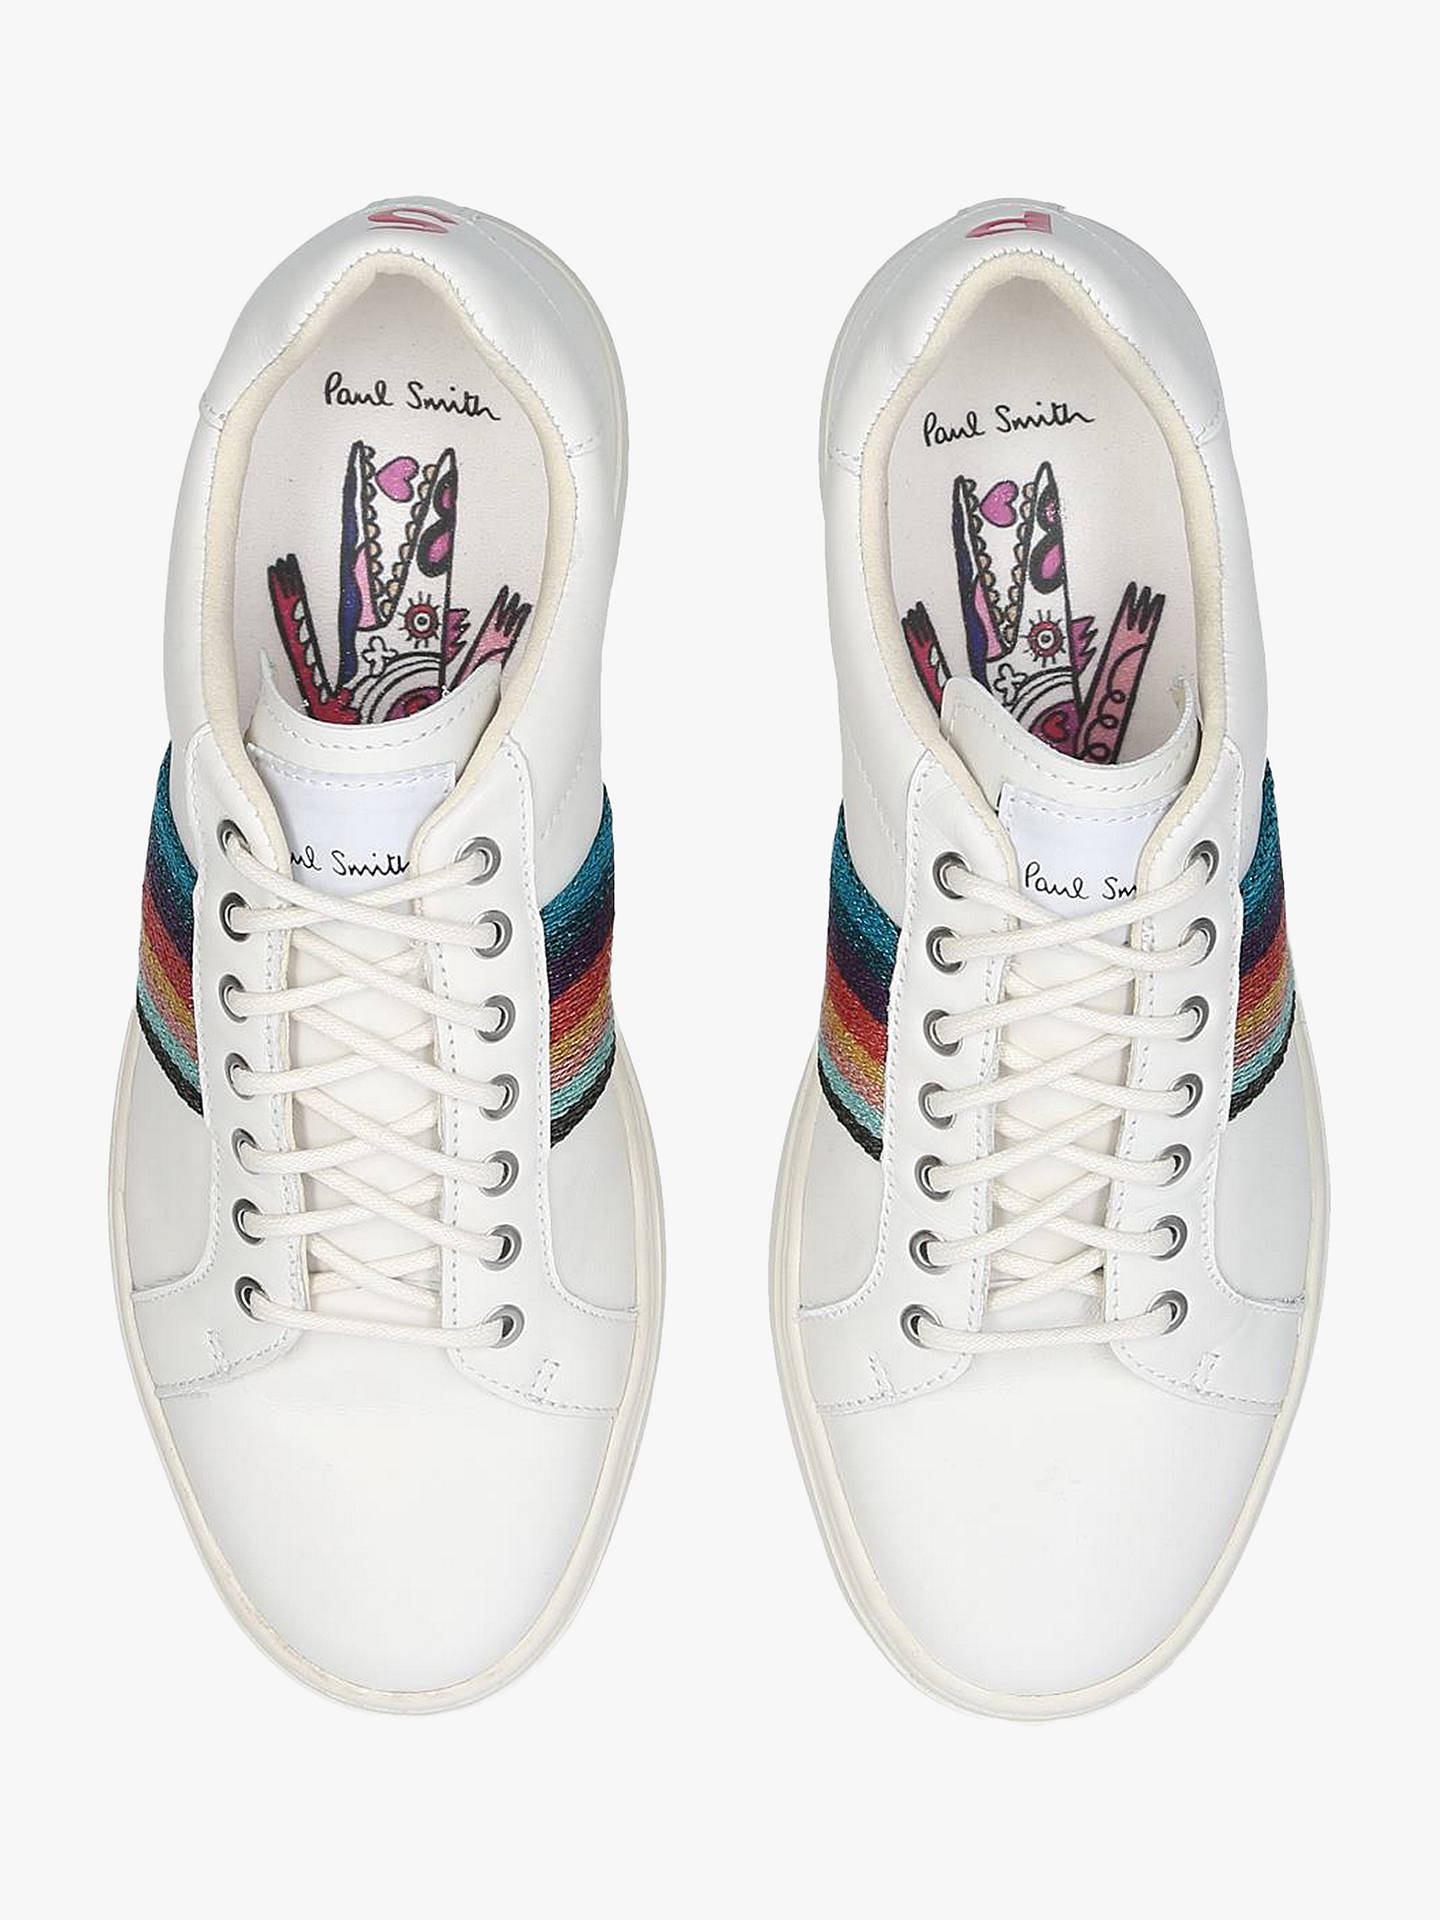 489feacddef8 ... Buy Paul Smith Lapin Stripe Lace Up Trainers, White/Multi Leather, 2  Online ...